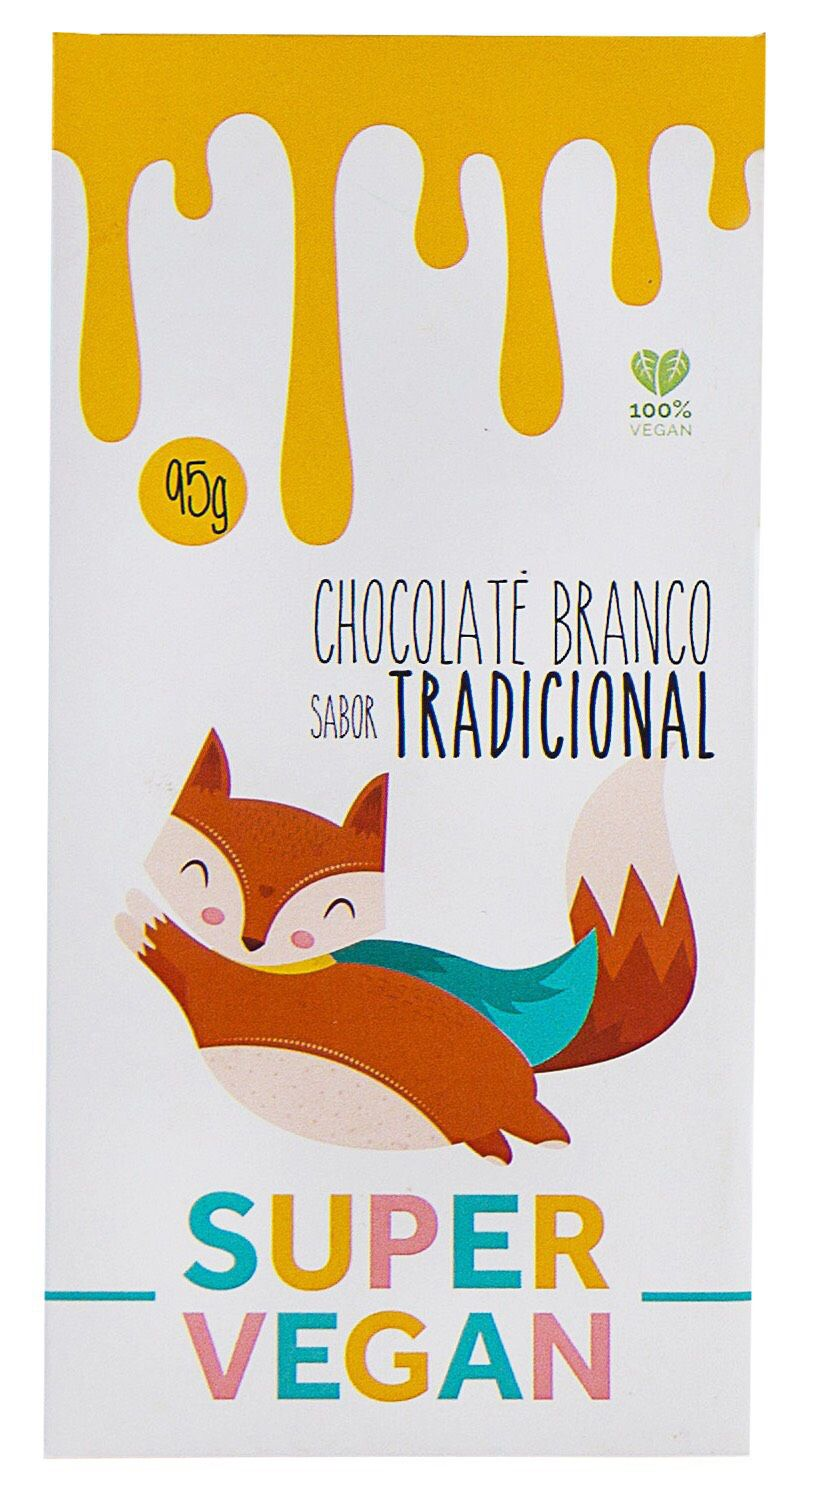 CHOCOLATE BRANCO TRADICIONAL VEGANO 95g - SUPER VEGAN